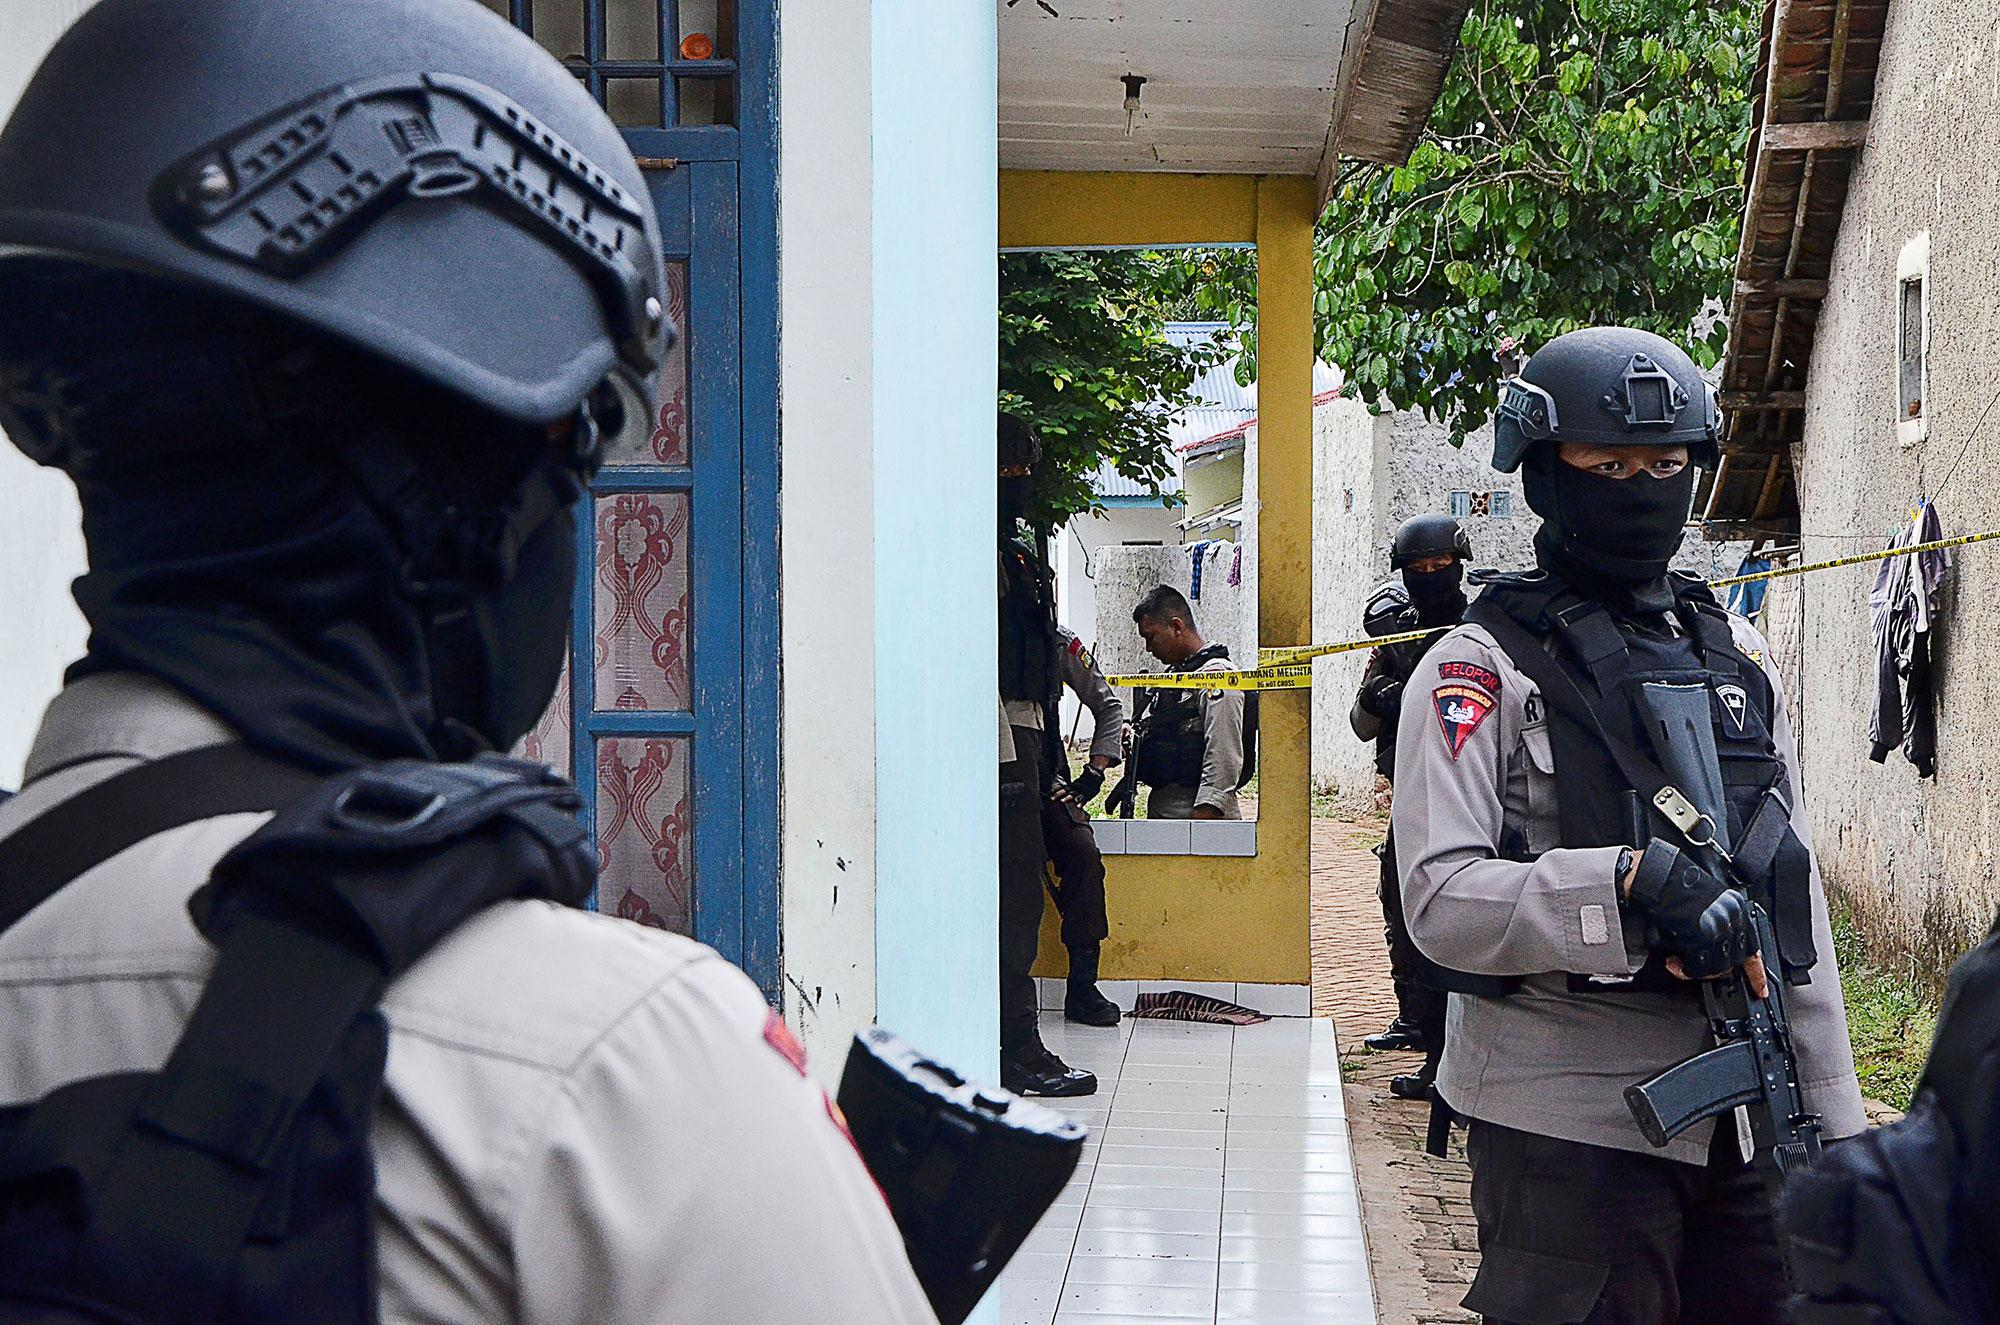 <p>Police officers stand guard outside the house of a suspected militant after anti-terrorism police from Densus 88 unit killed three suspects in a gunfight at another location in Serpong, South Tangerang, near Jakarta, Indonesia on Dec. 21, 2016. (Photo: Antara Foto/Fakhri Hermansyah/ via Reuters) </p>